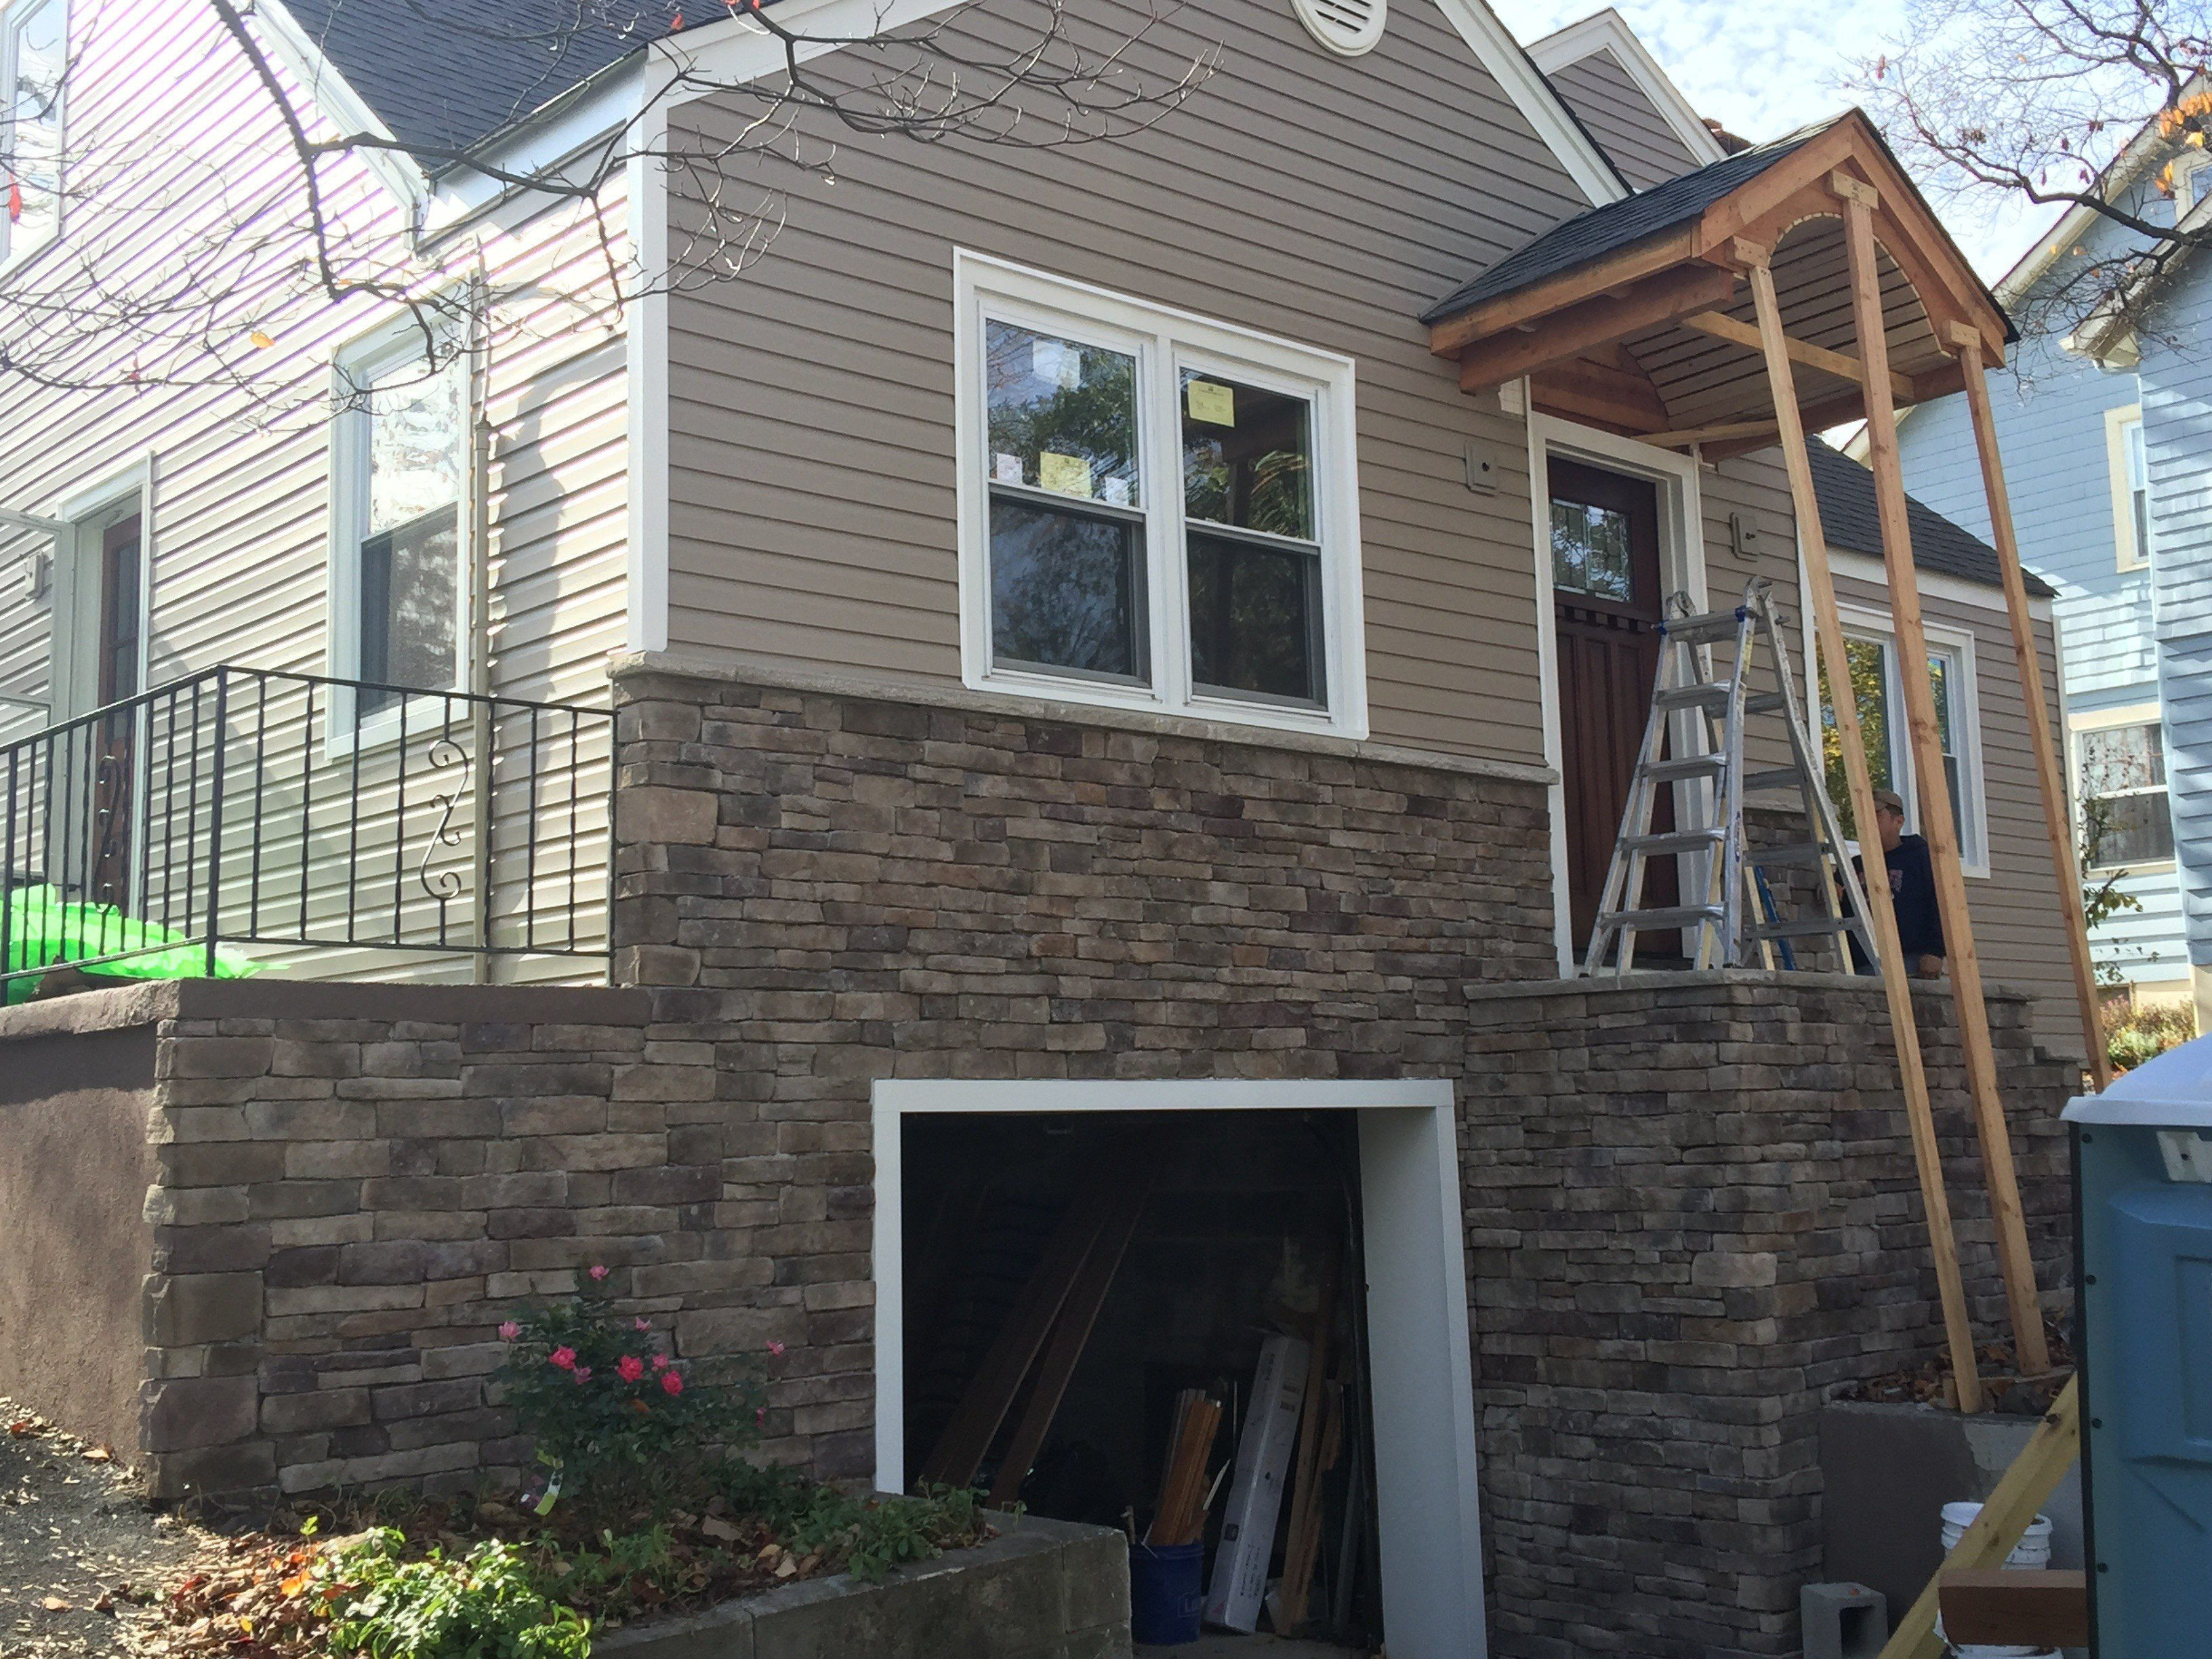 Elmwood Park Nj Crane Insulated Vinyl Siding 973 487 3704